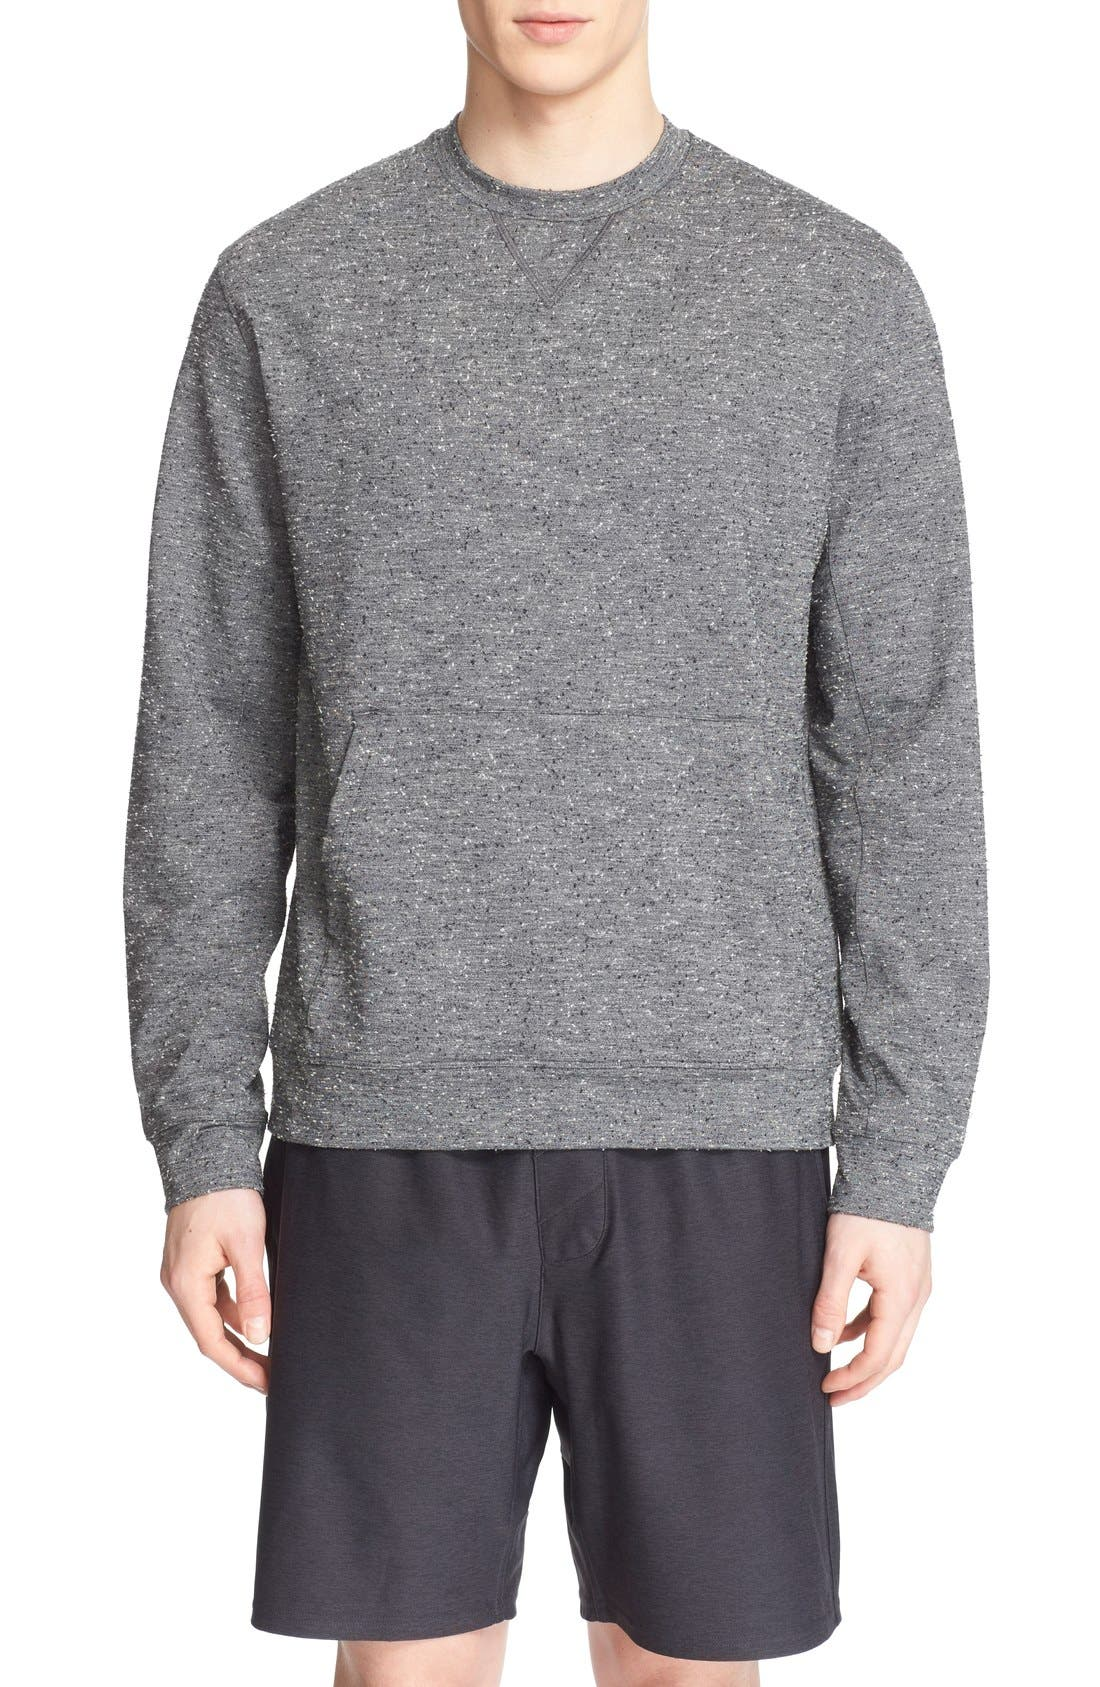 A.P.C. and Outdoor Voices Tweed Sweatshirt